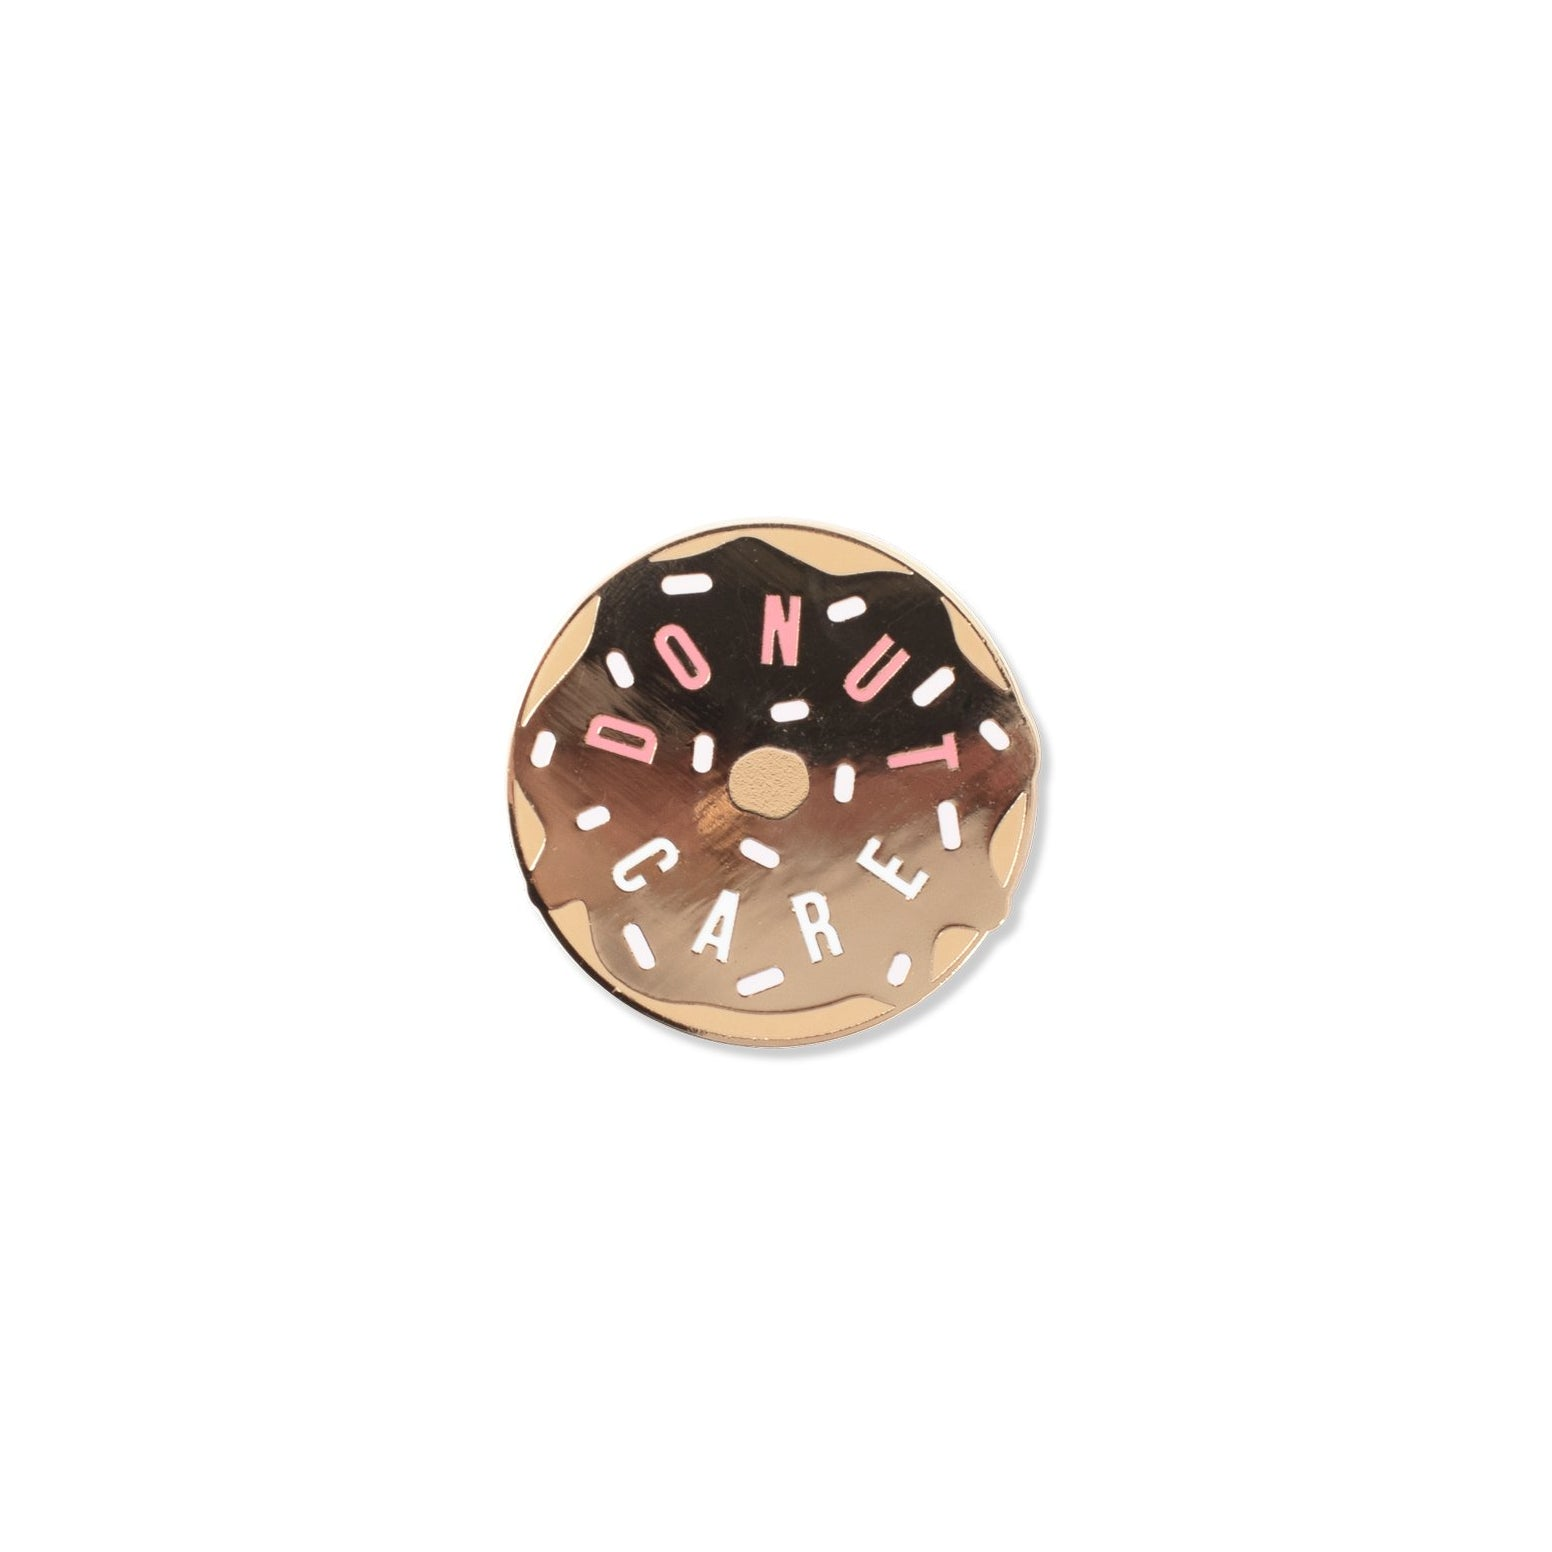 DONUT CARE PIN